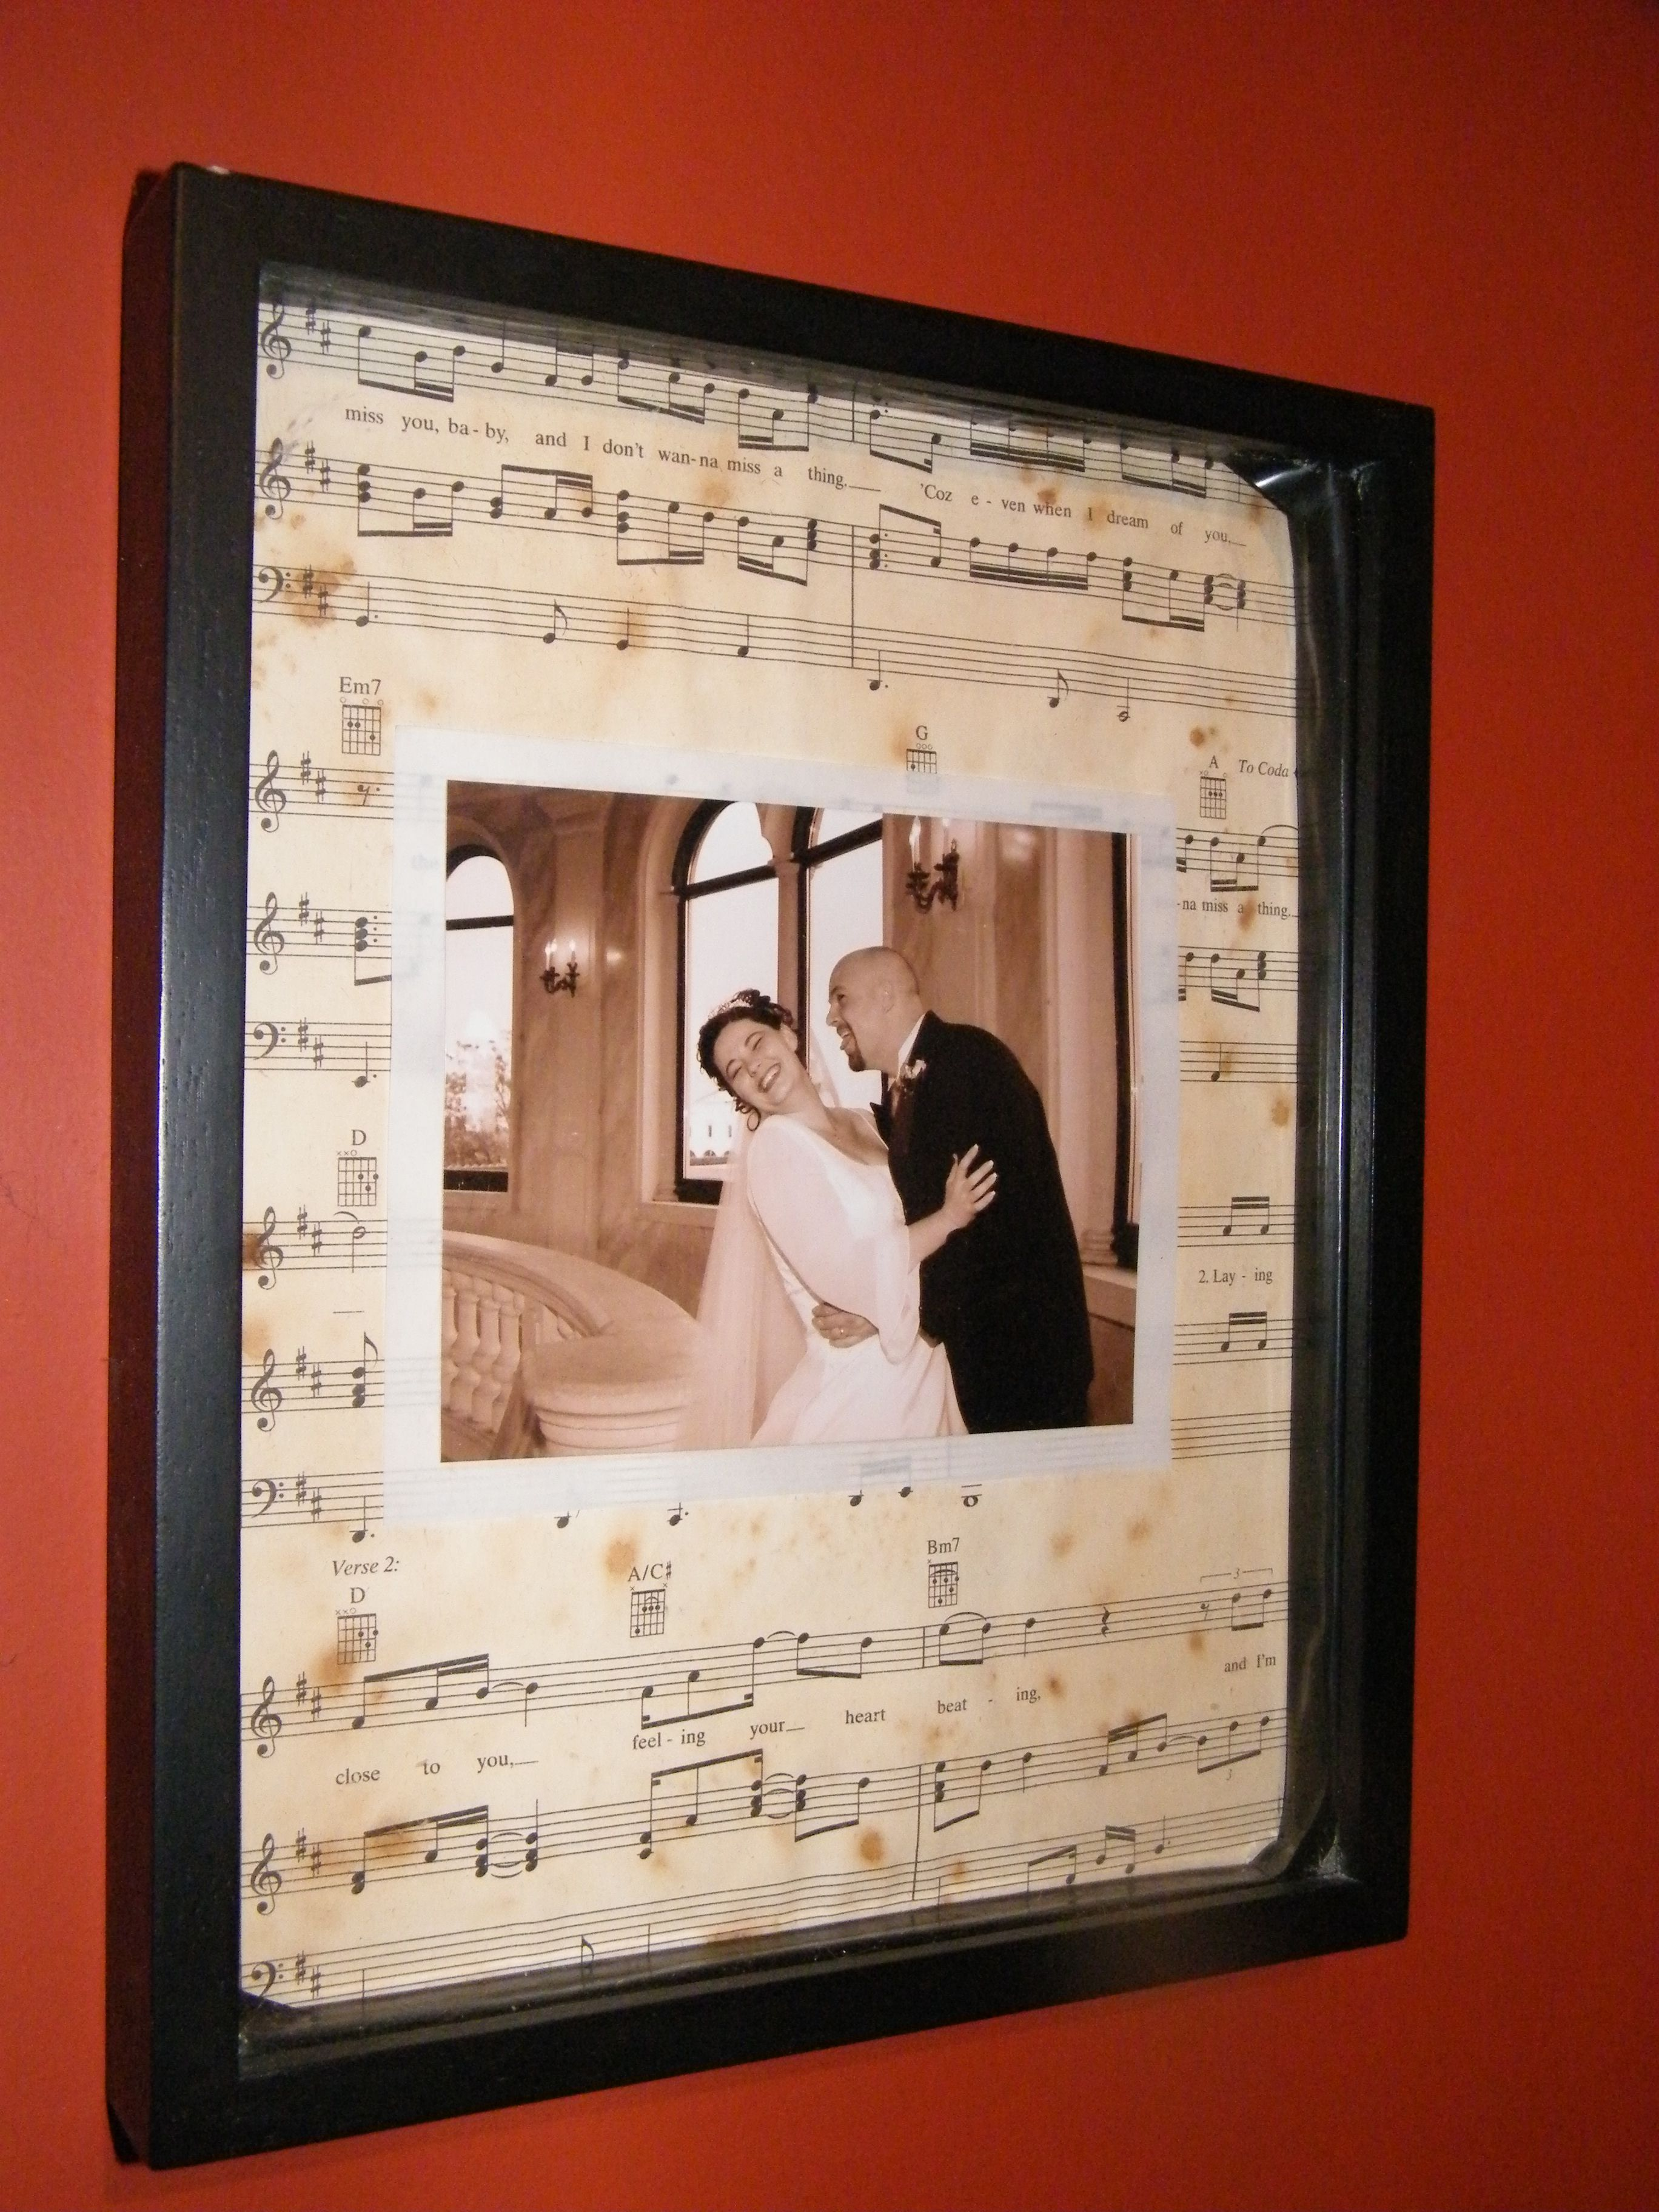 Wedding Picture Framed And Put On Sheet Music Of Our Wedding Song Tea And Coffee Stained To Antique Wedding Picture Frames Sheet Music Crafts Music Gifts Diy